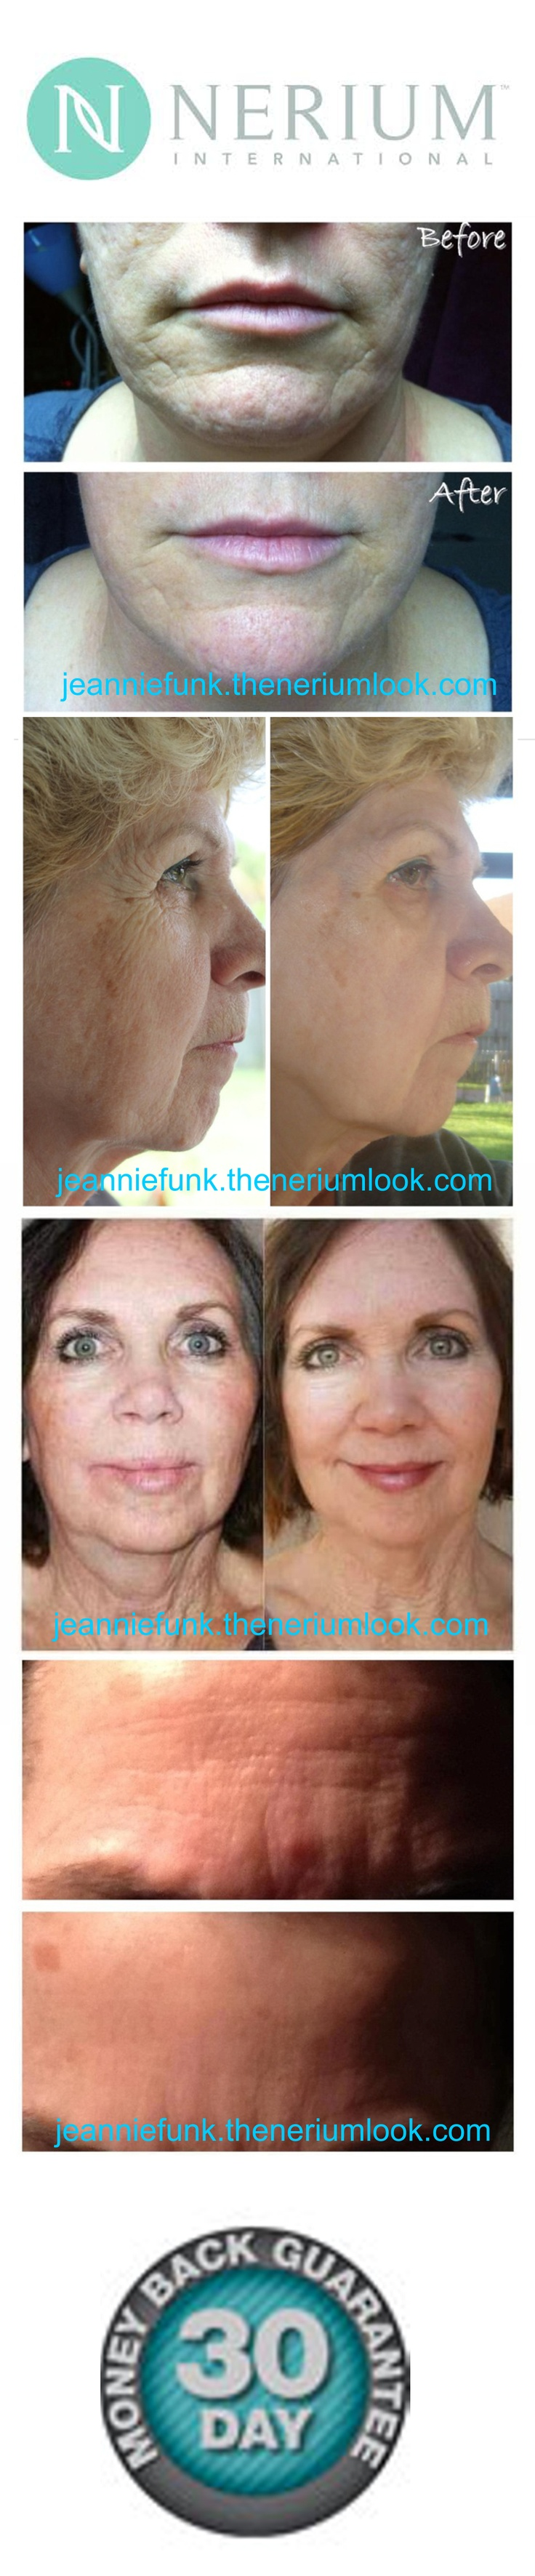 LOOK BETTER. LIVE BETTER! Nerium International www.Kimberlybeth.nerium.com